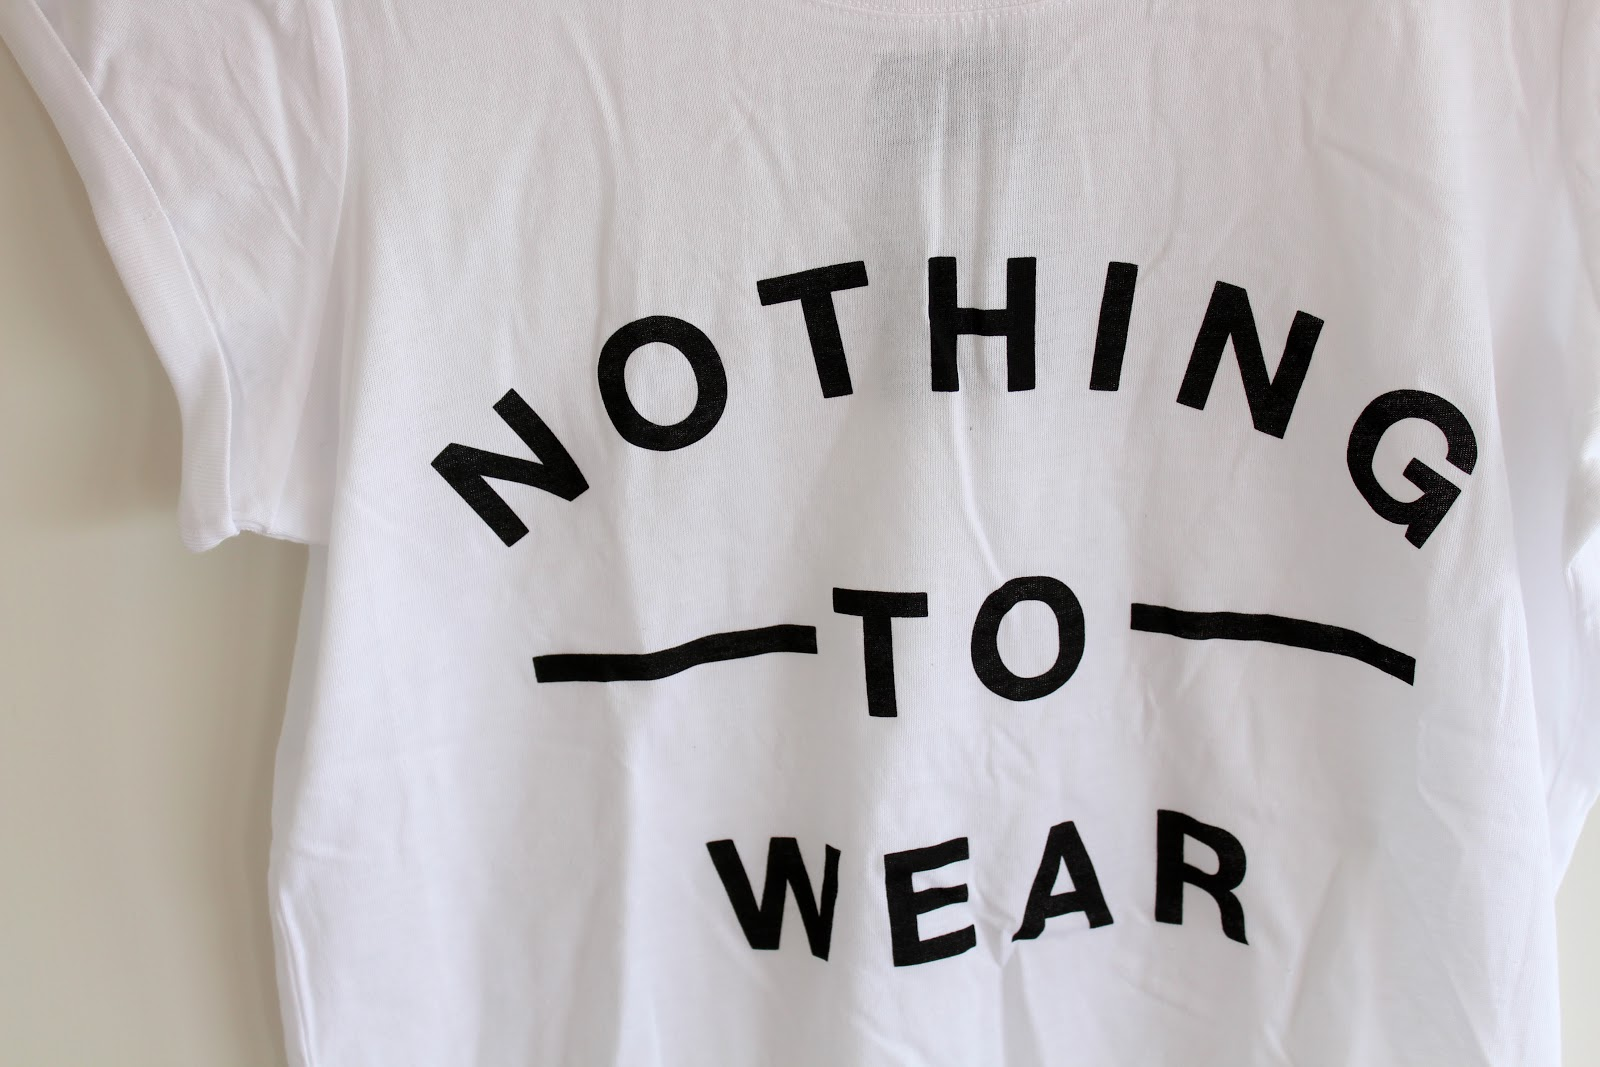 New Look, New Look slogan tee, New Look t-shirt, New Look nothing to wear, New Look slogan top, New Look white top